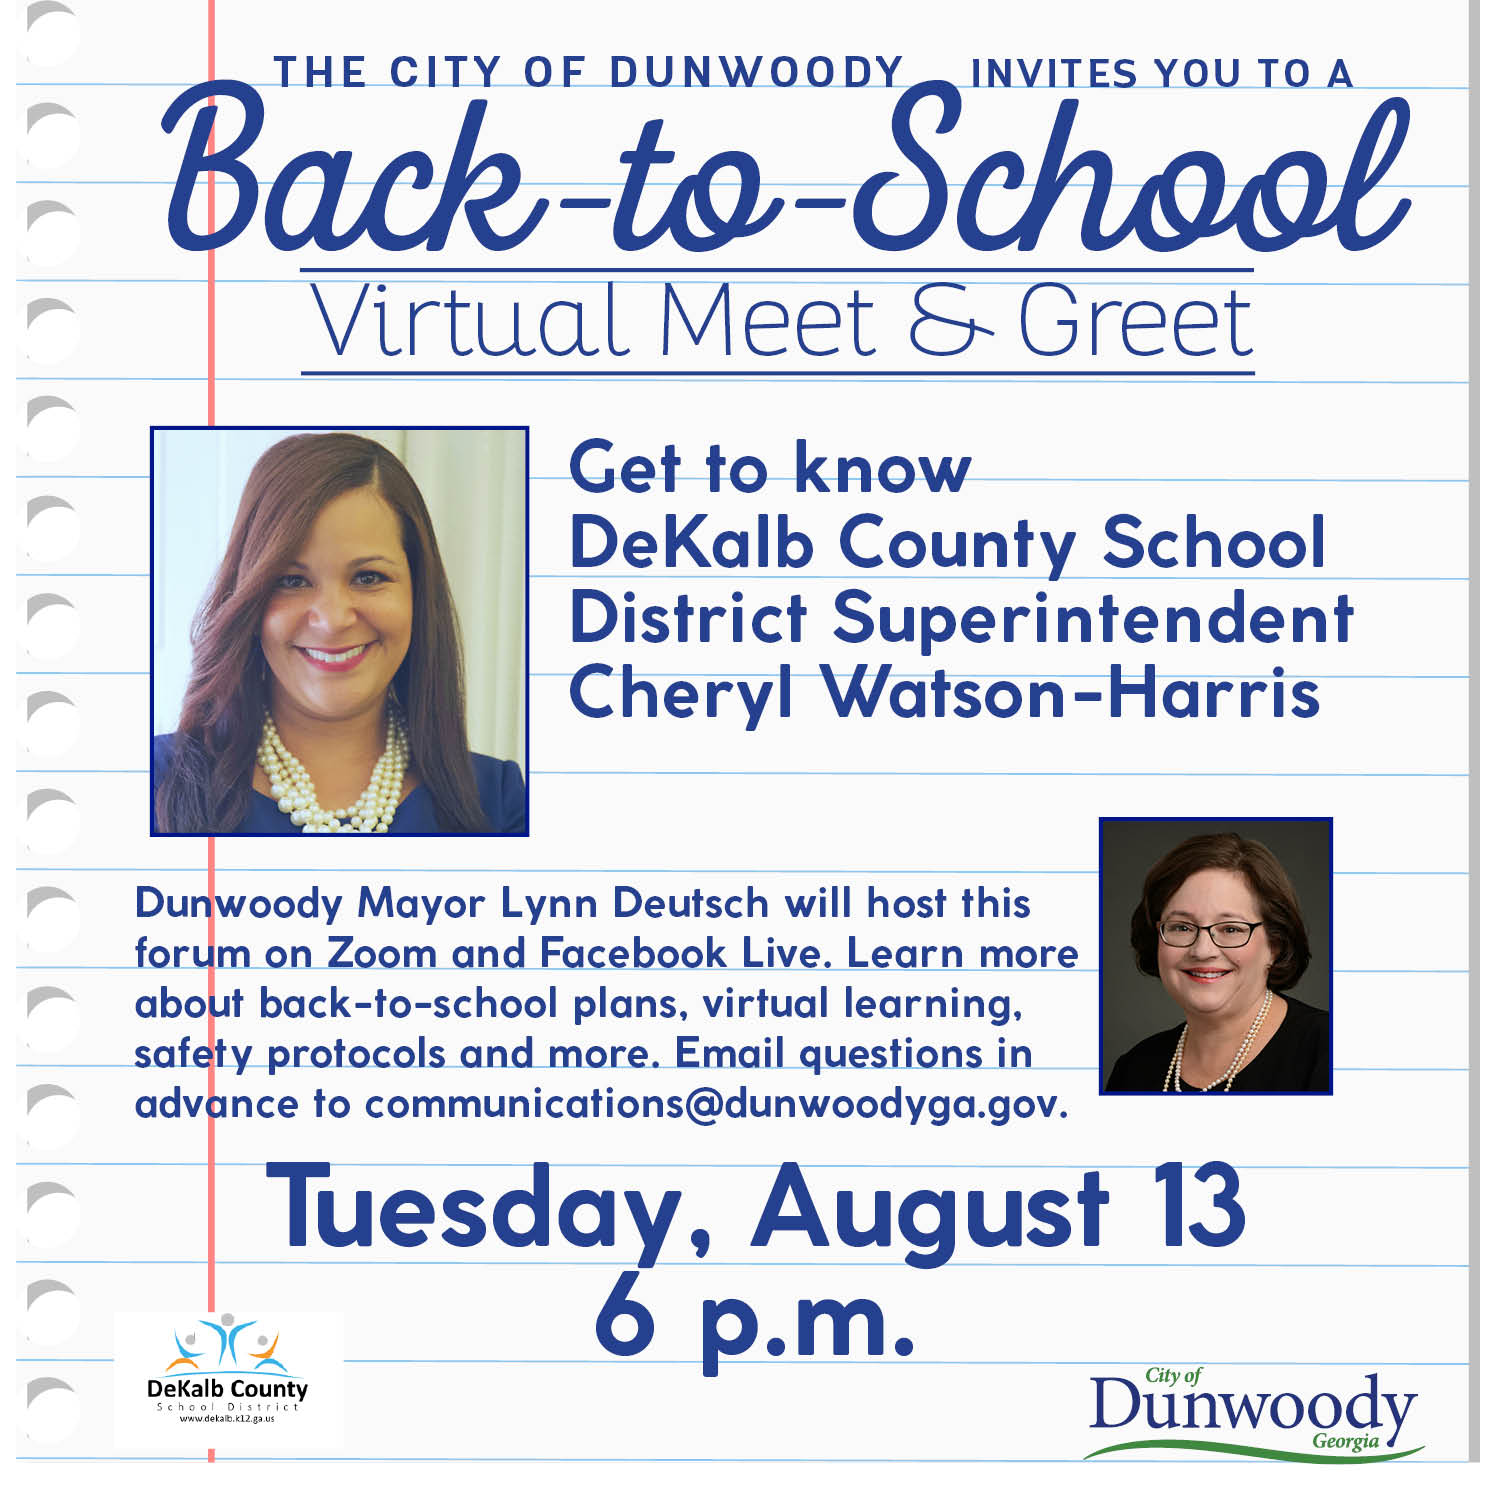 Virtual Meet-and-Greet with DeKalb County School District Superintendent